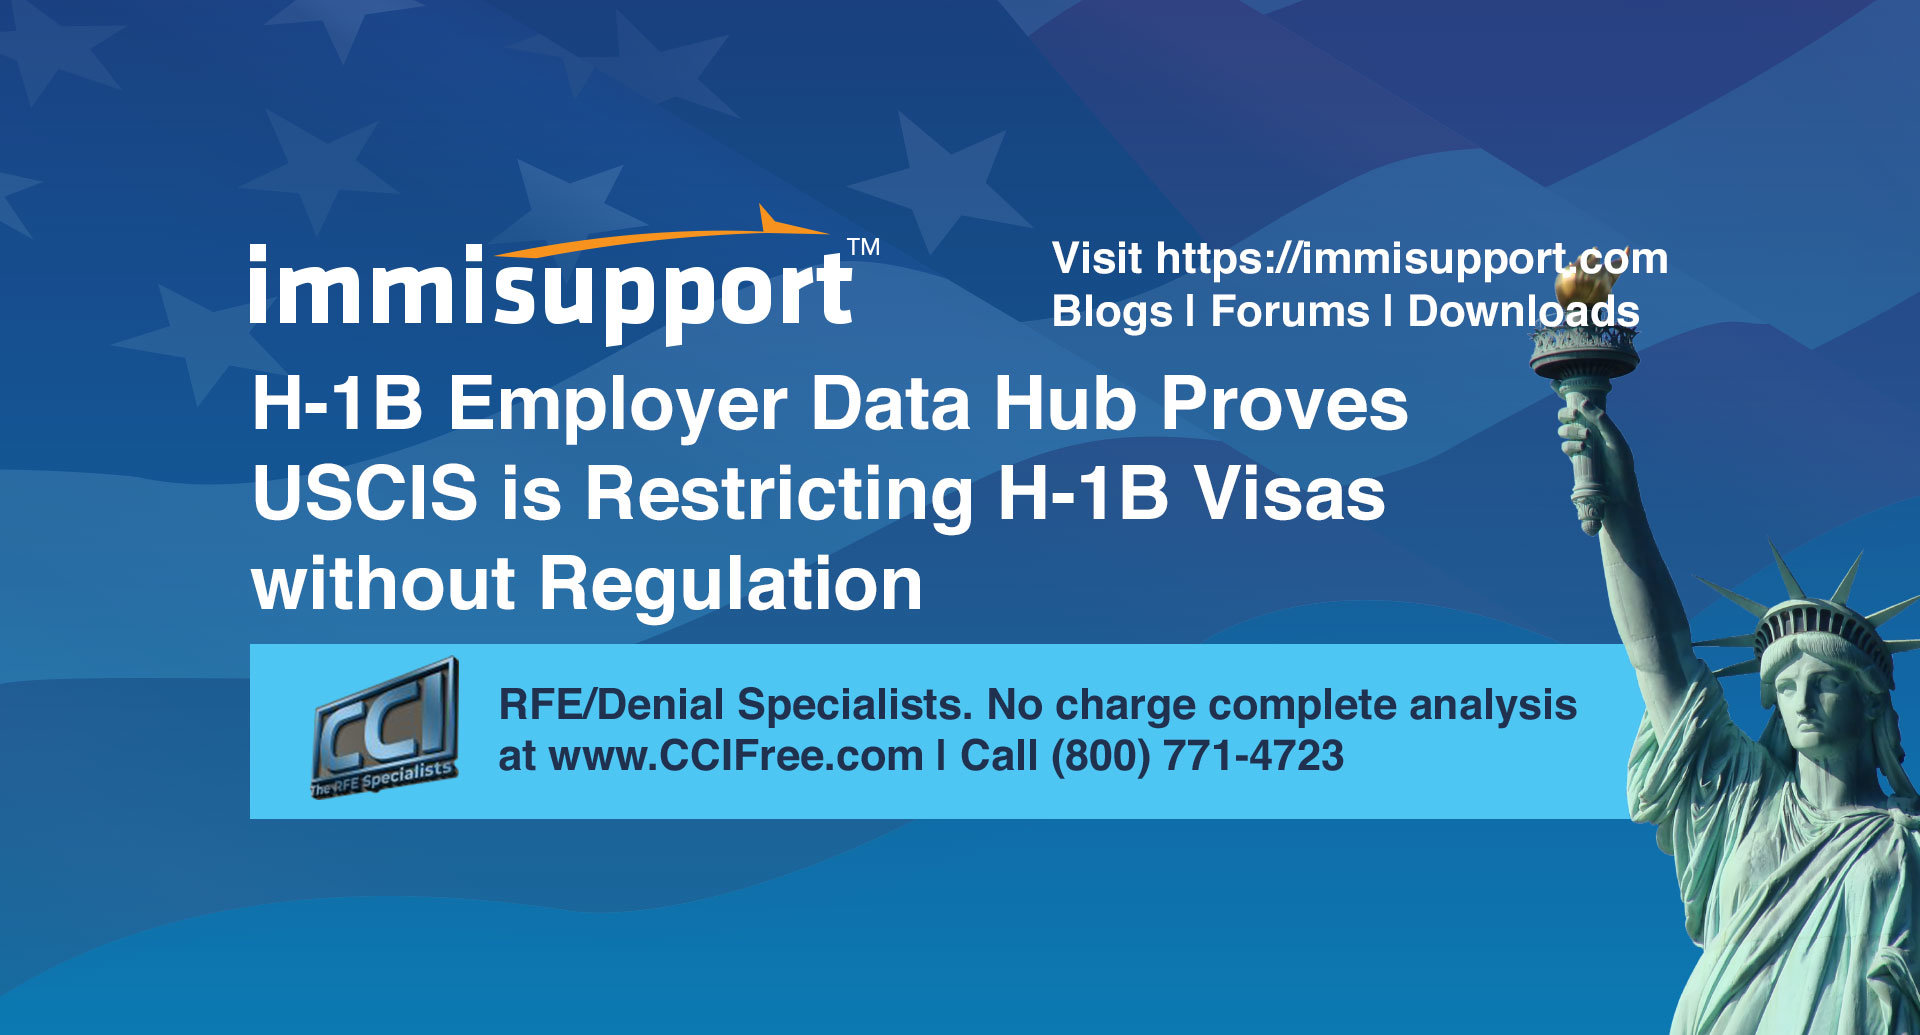 H-1B Employer Data Hub Proves USCIS is Restricting H-1B Visas without Regulation